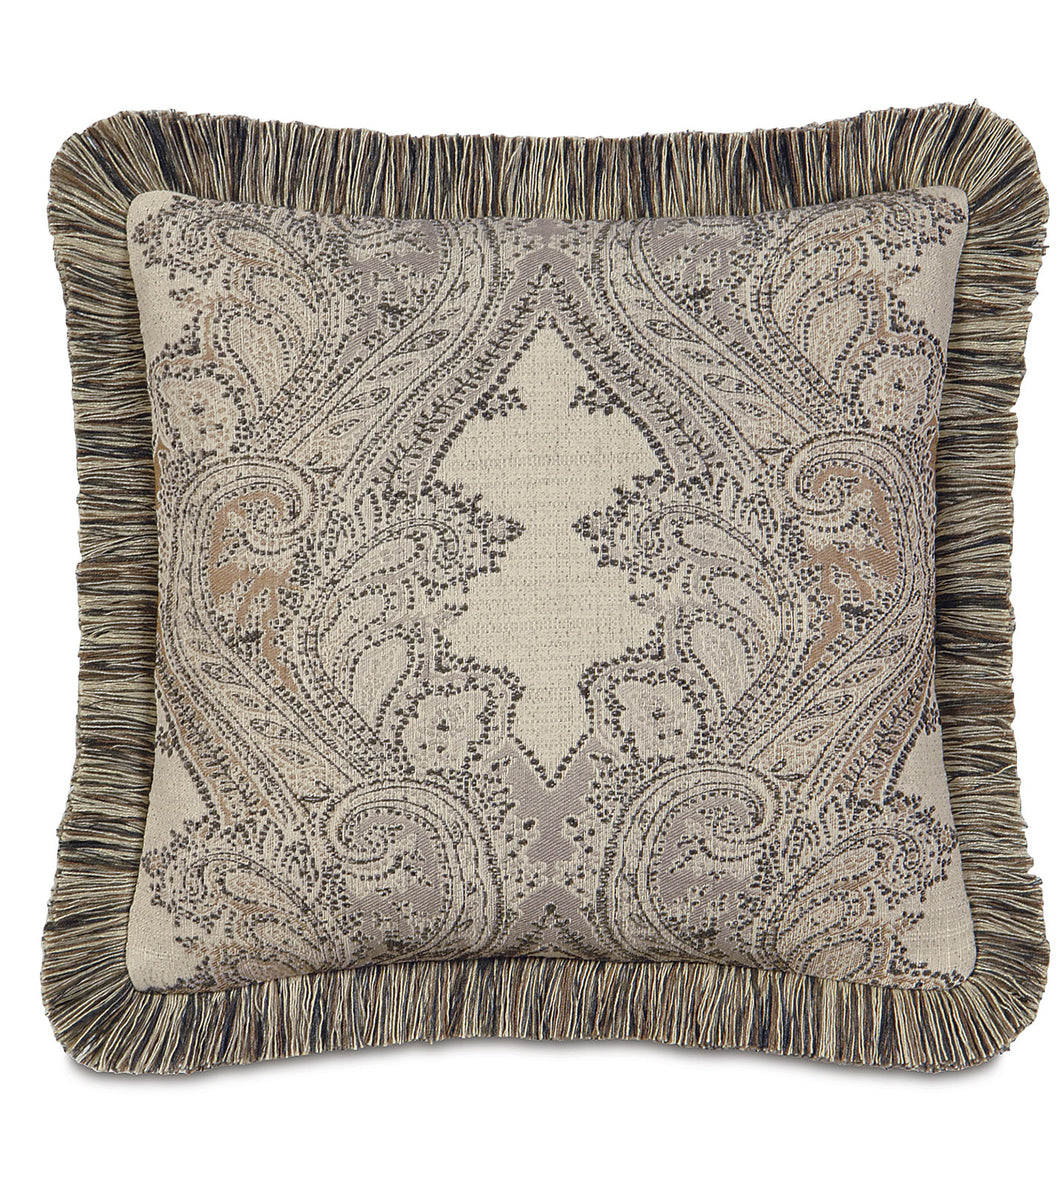 Aiden Damask Brush Fringe Accent Pillow in Neutral 18